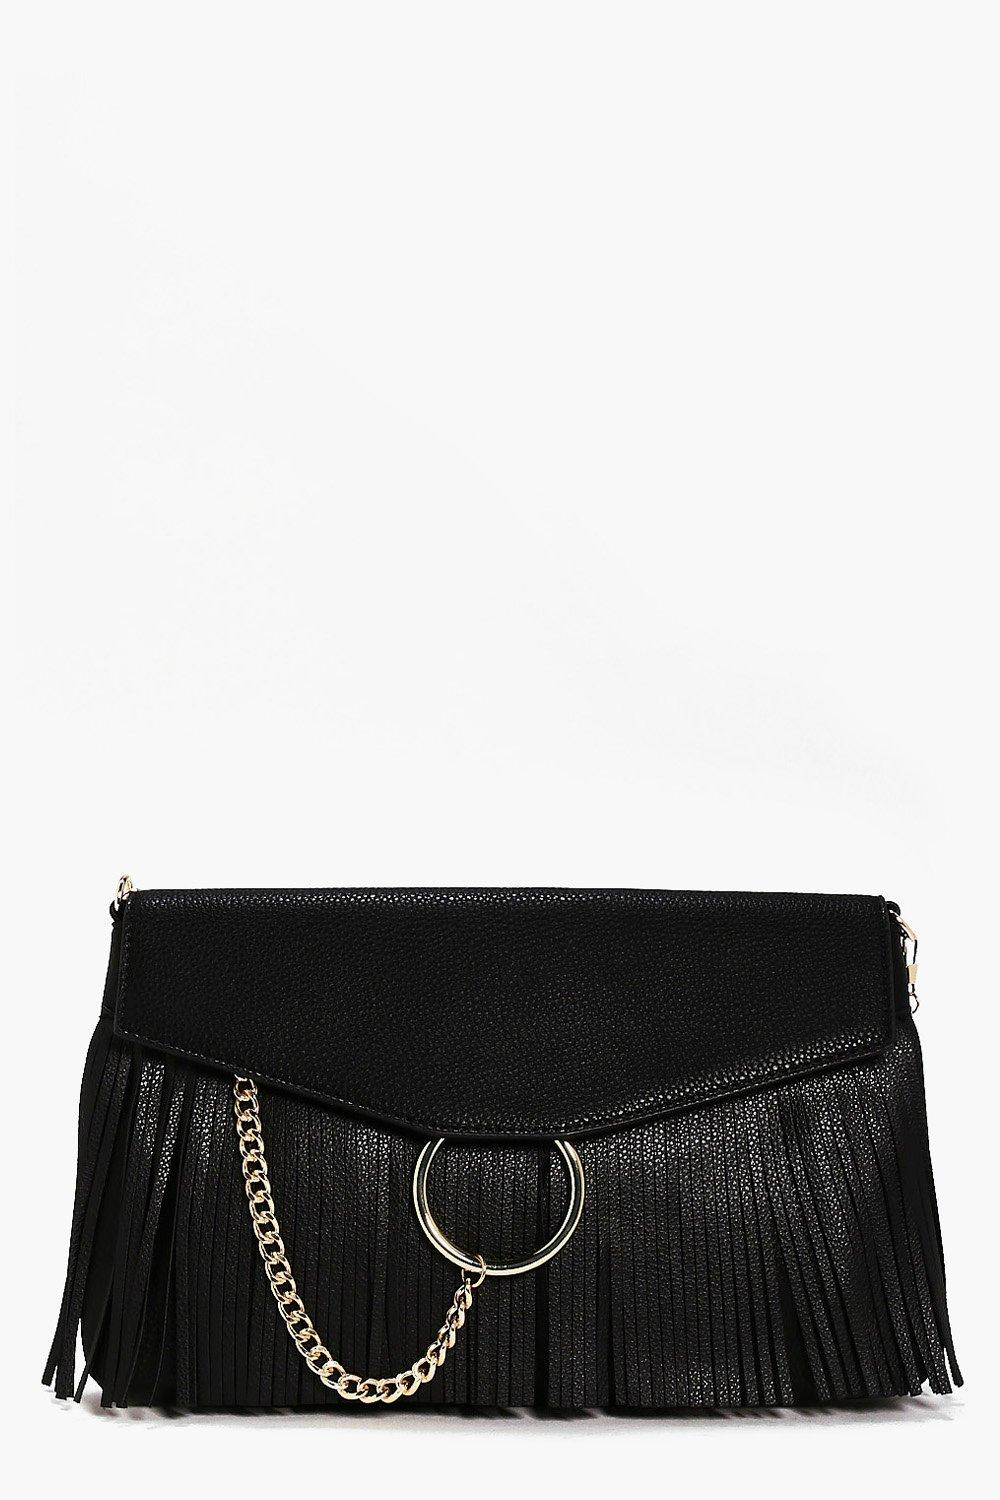 Circle & Fringed Cross Body Bag - black - Lillie C